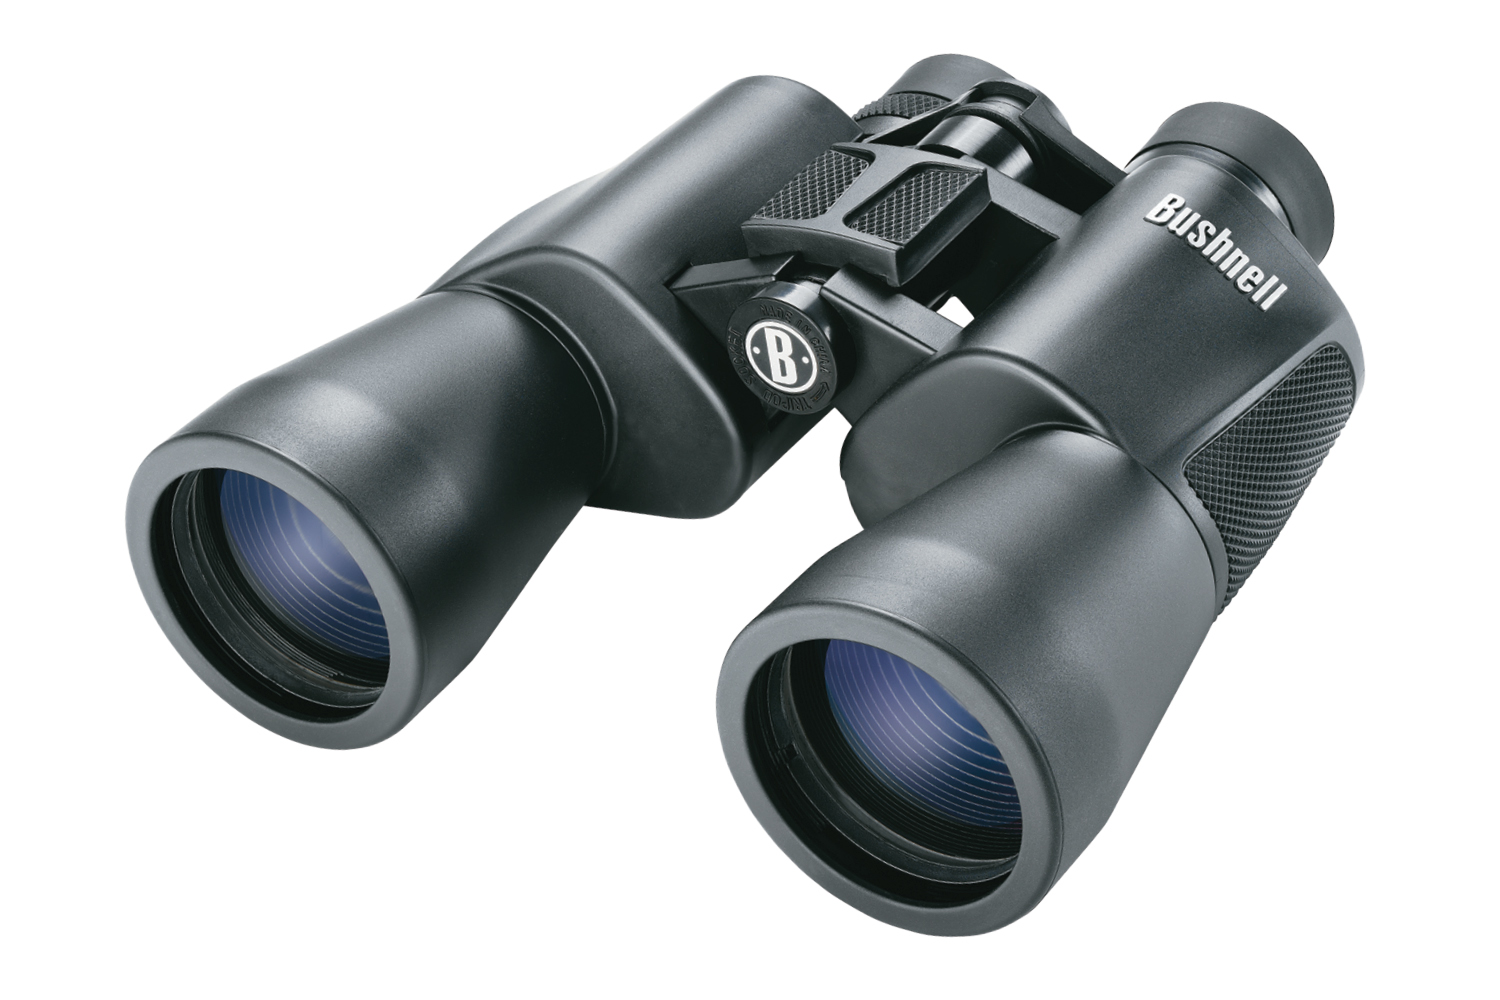 Бинокль Bushnell PowerView PORRO 10x50 цены онлайн